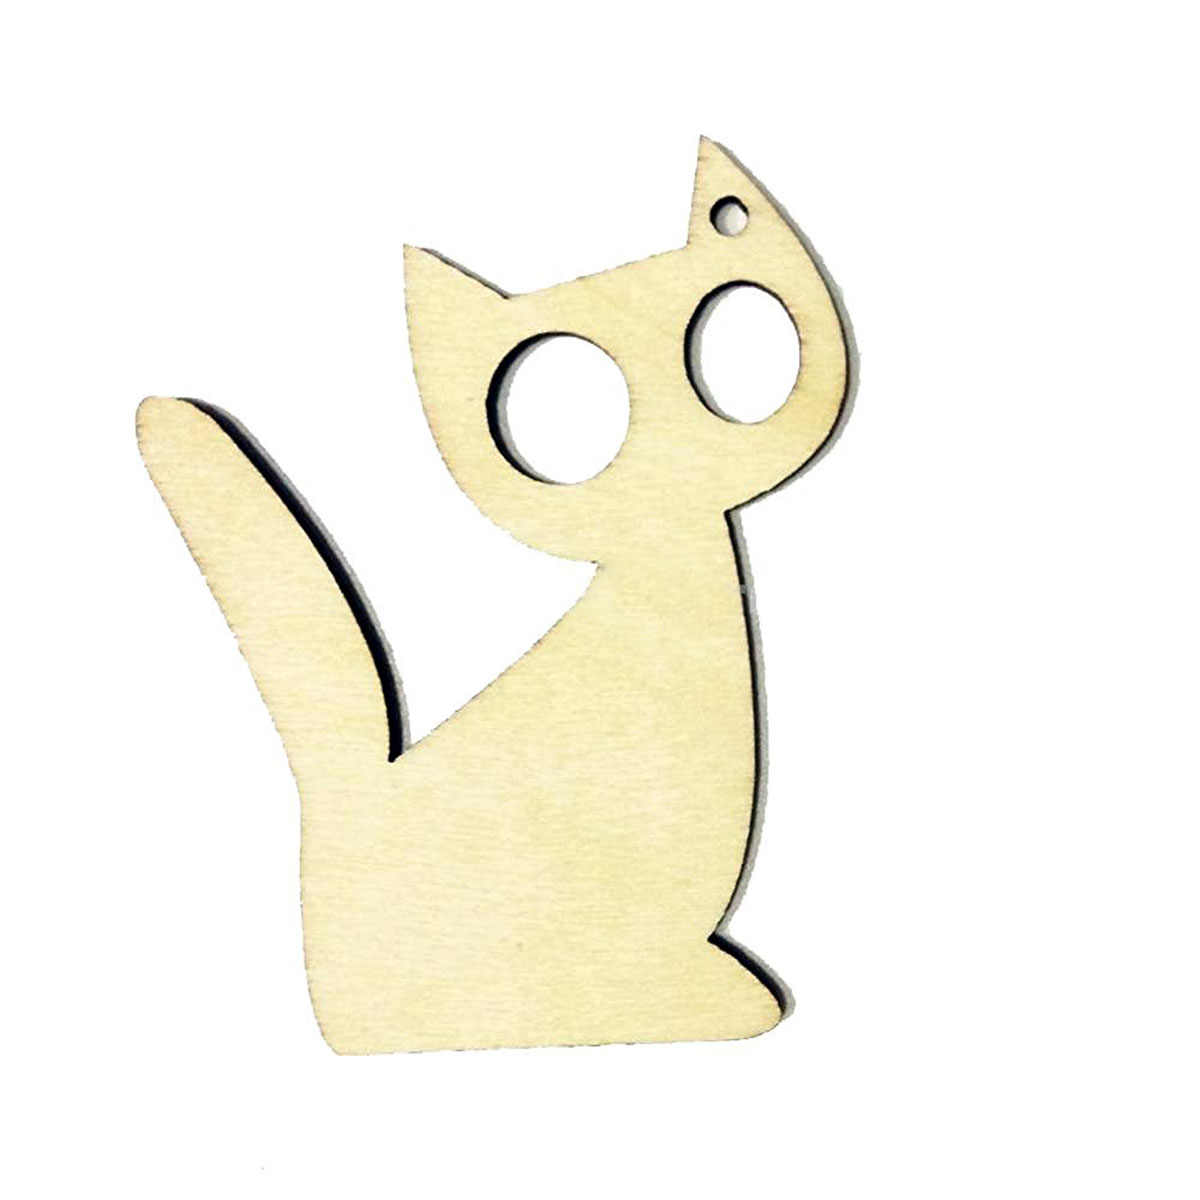 10pcs Wooden MDF Tags Kitten Cat Shape DIY Craft  Party Supplie Birthday Garland Halloween Hanger Decoration With Strings